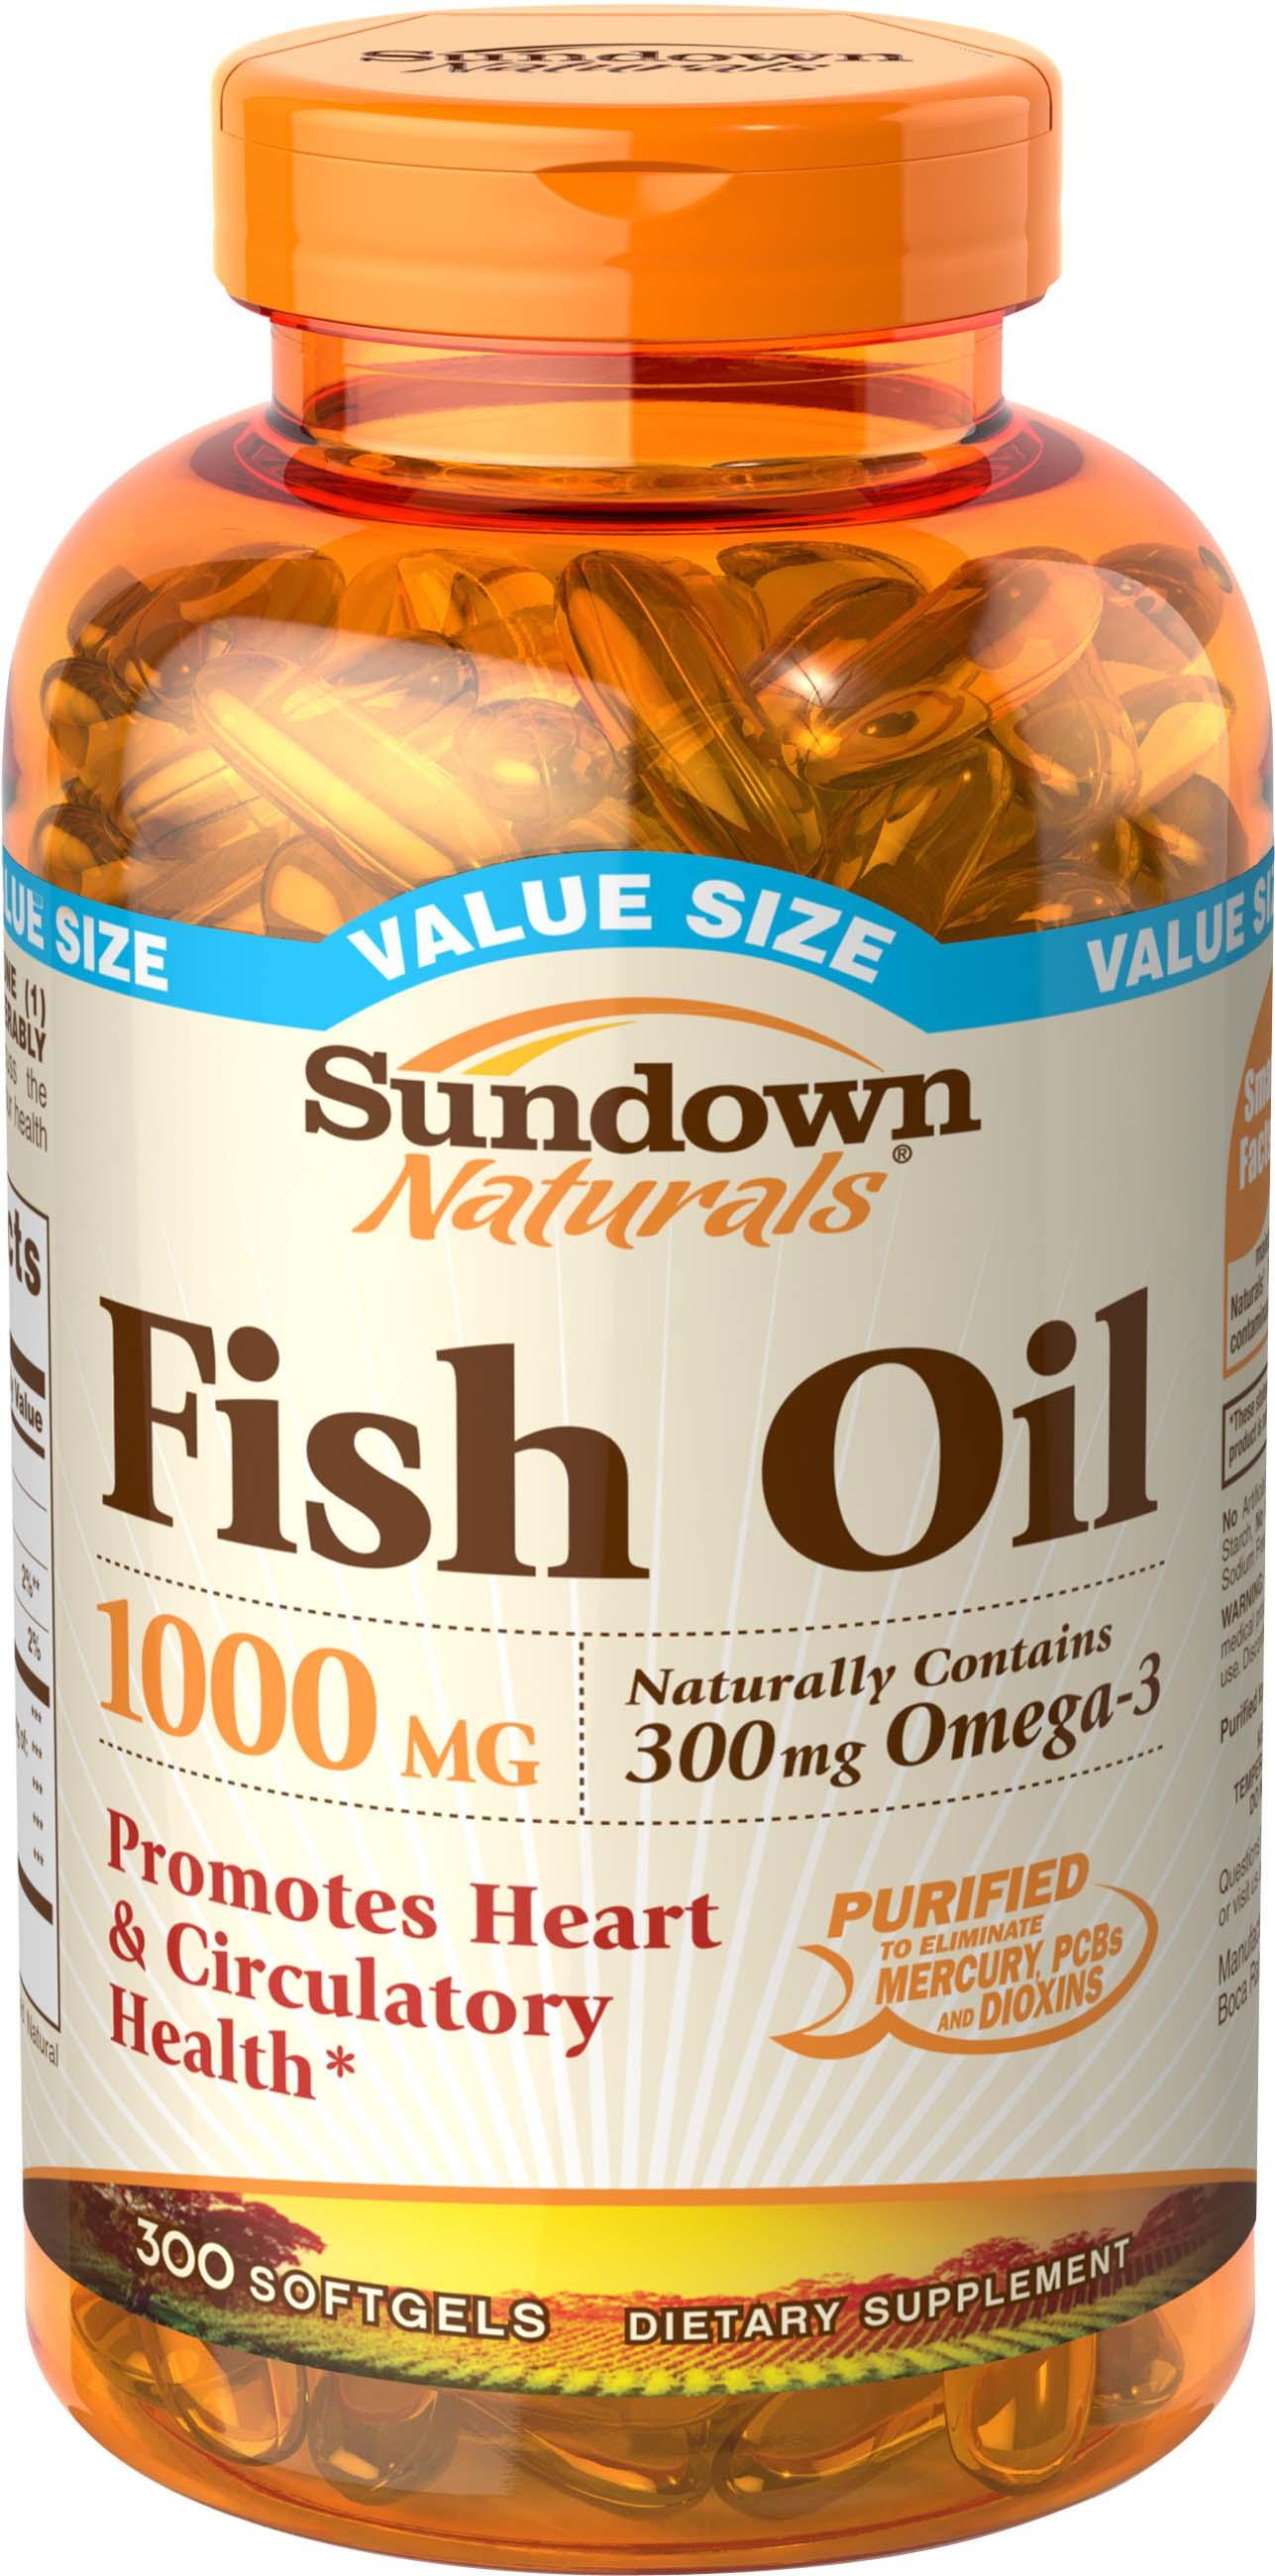 Sundown naturals fish oil with omega 3 fatty for Sundown naturals fish oil review